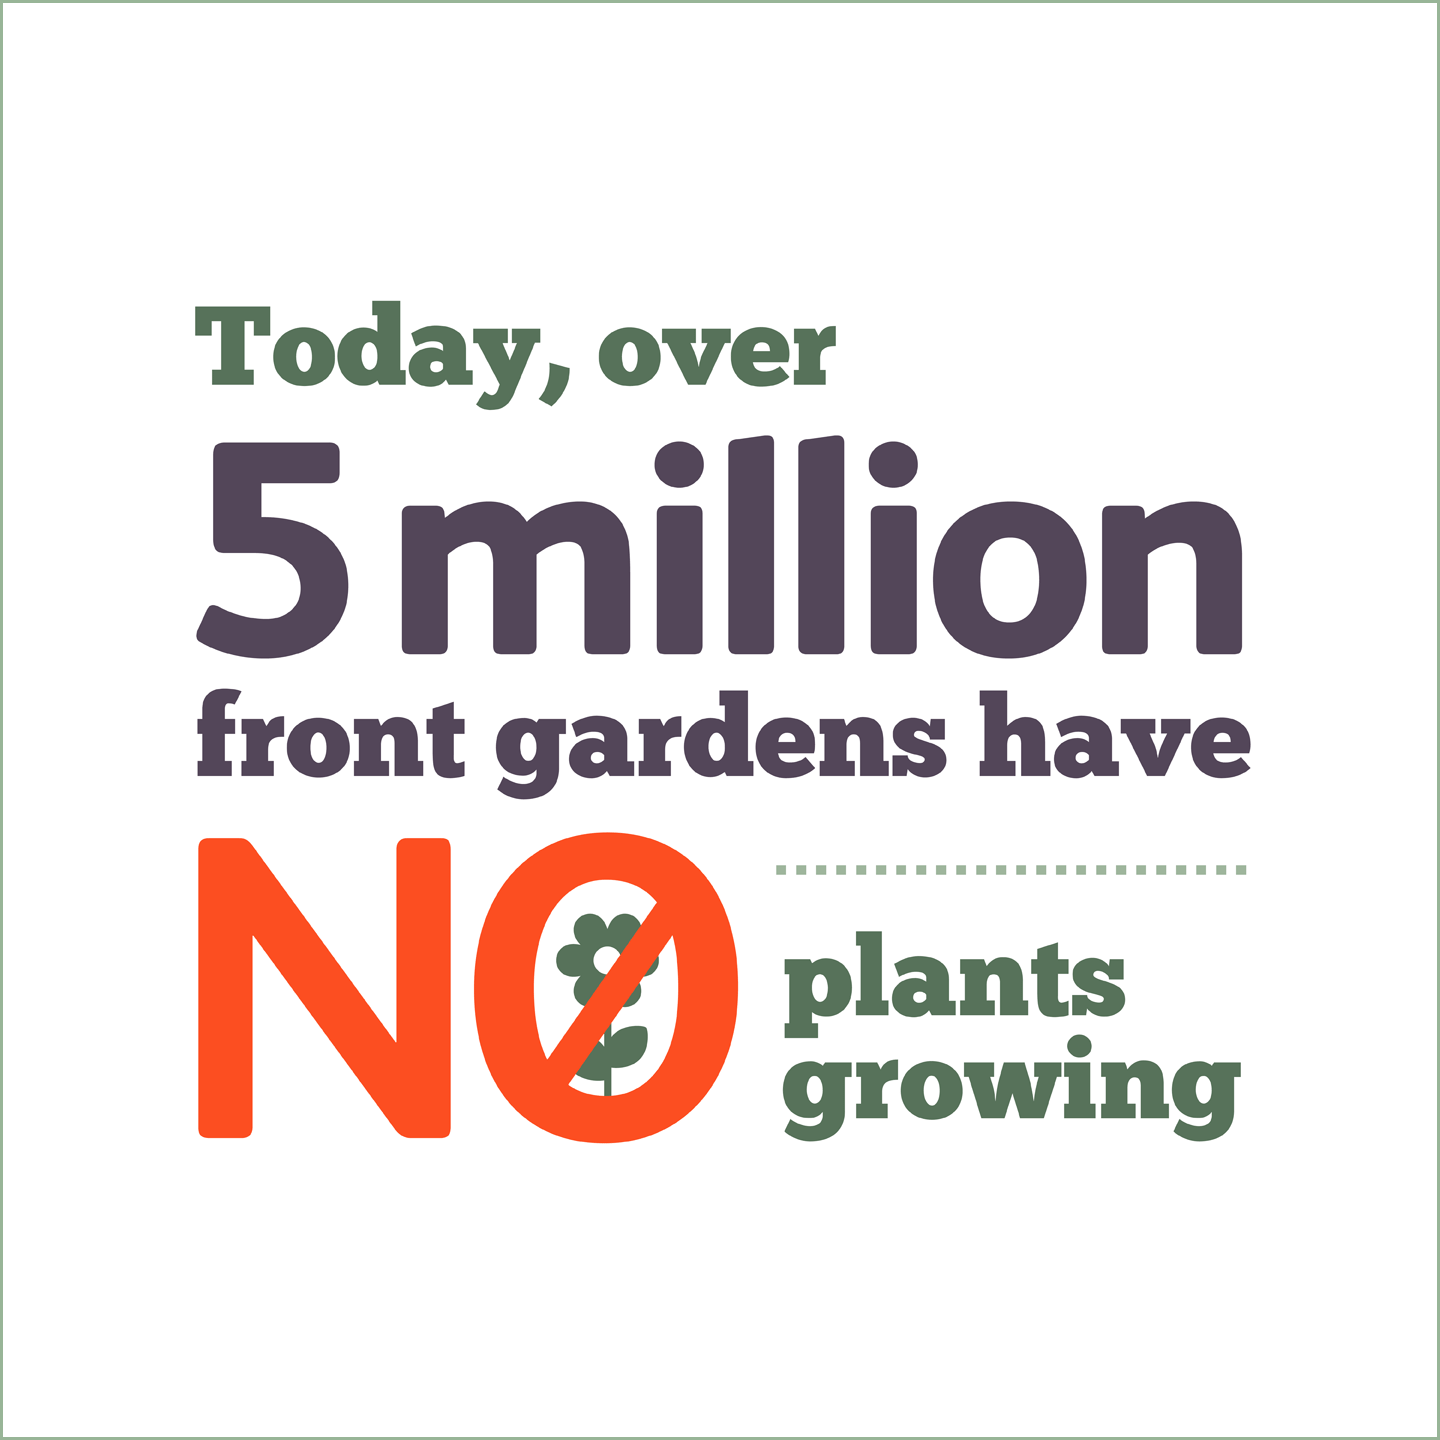 Over 5 million front gardens have no plants growing